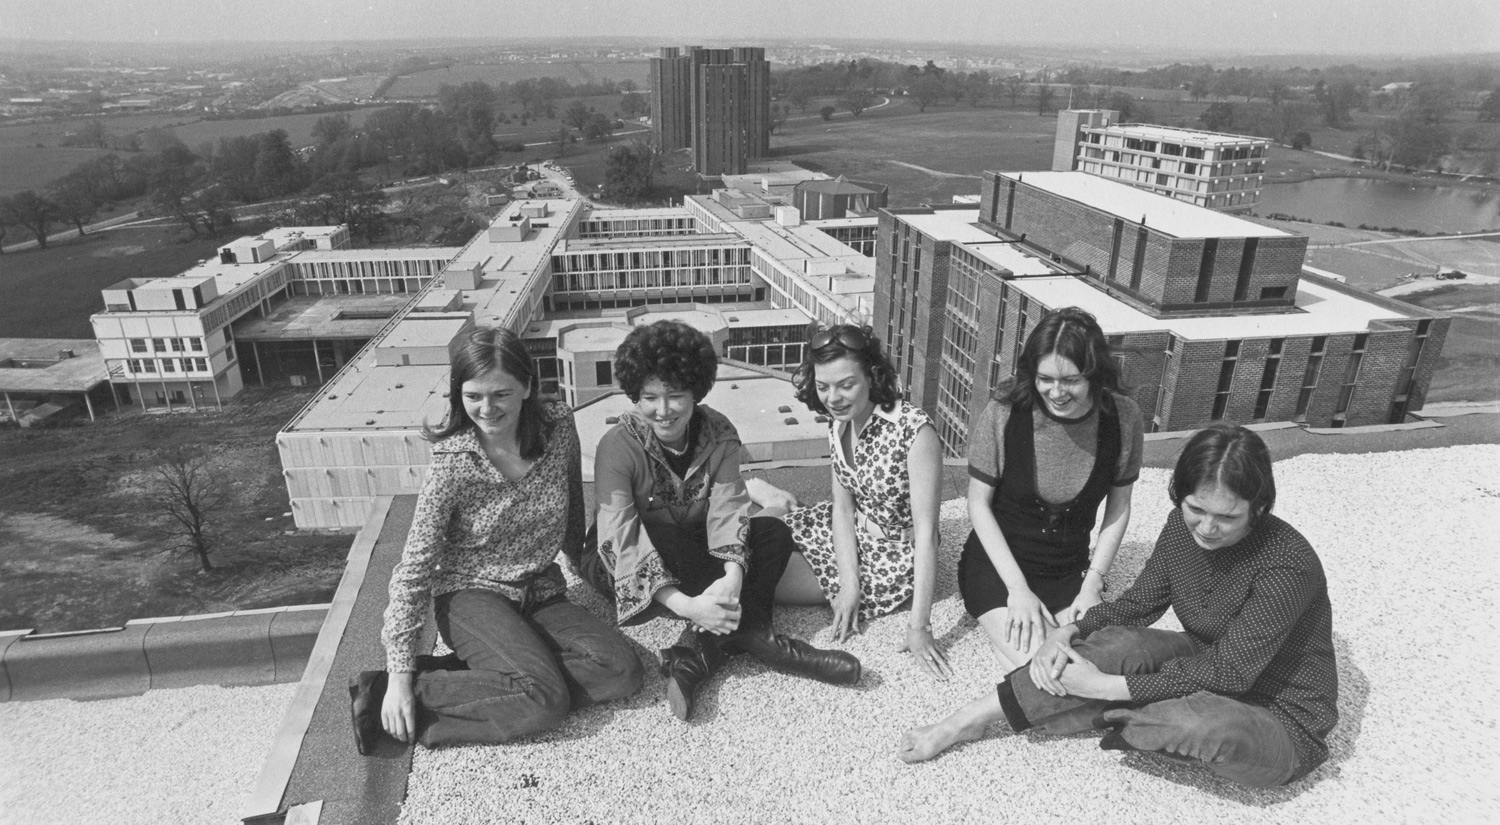 Students on top of one of the Towers in 1970